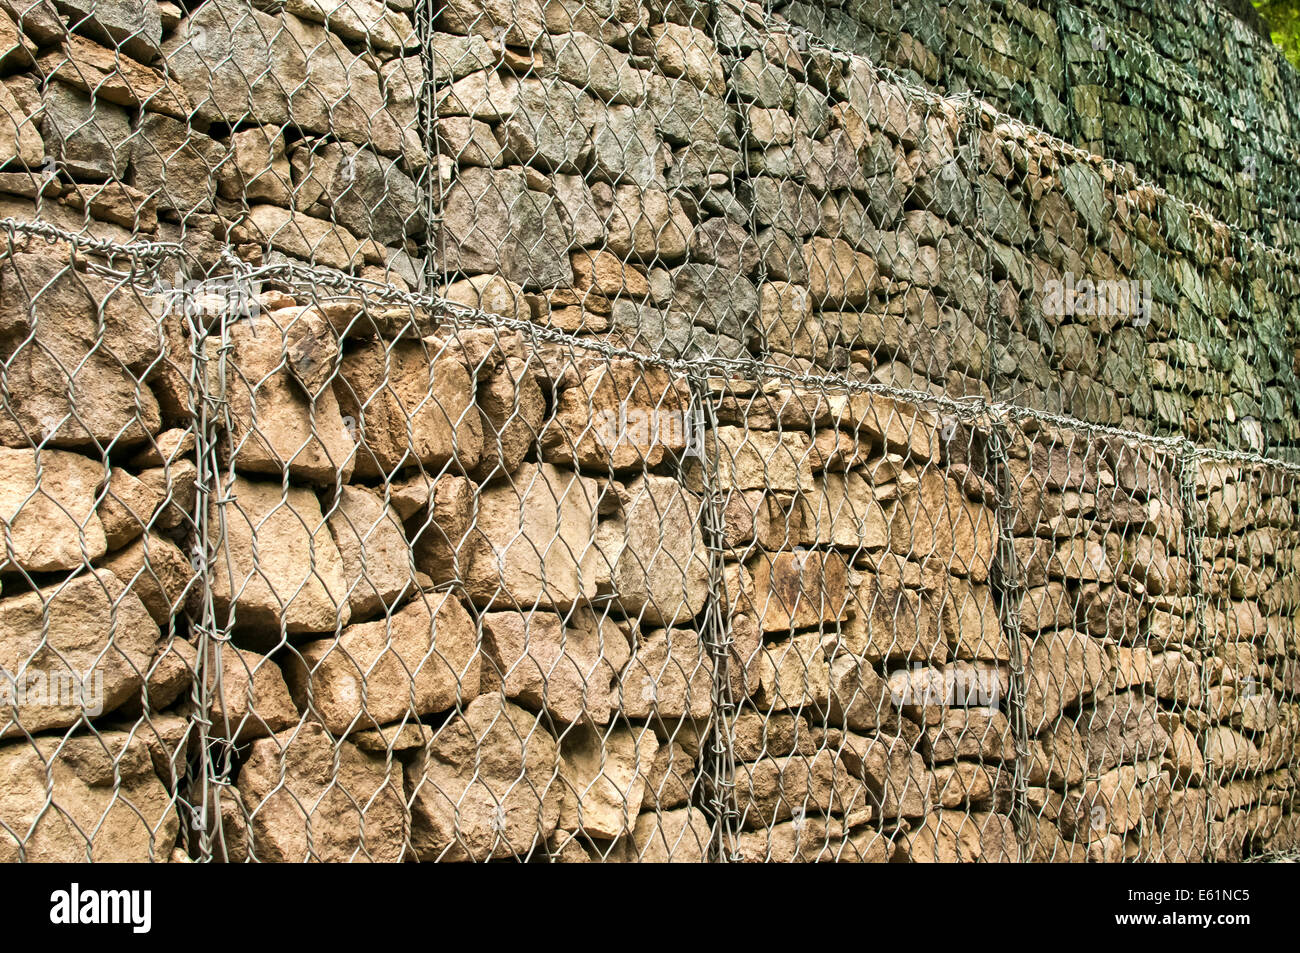 Gabion baskets filled with stones - Stock Image